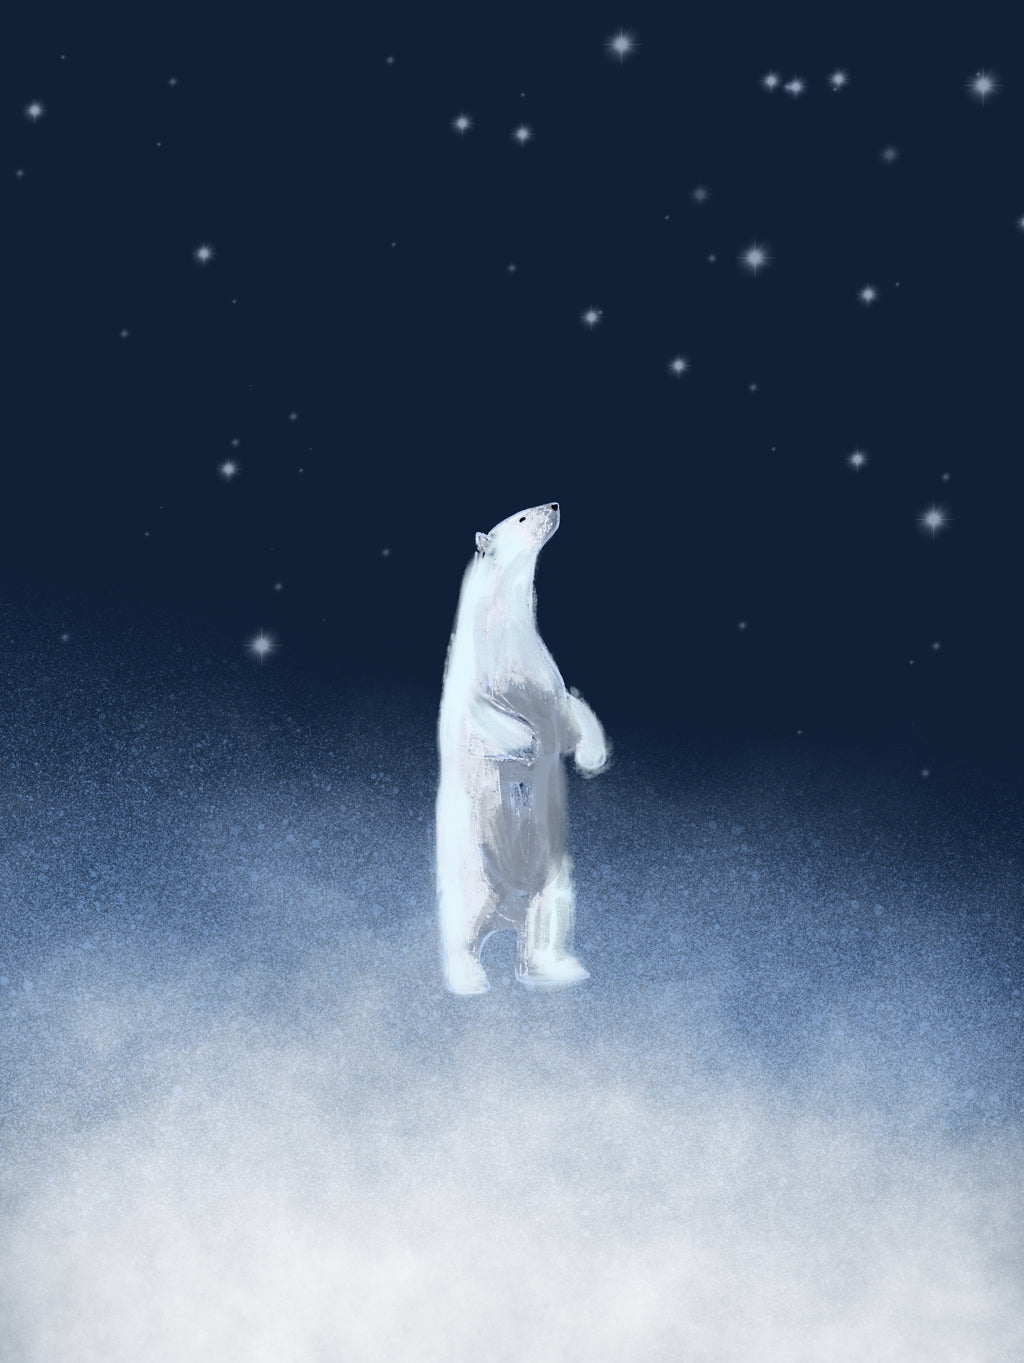 White Bear - limited edition print xmas ideas stars dark blue sky signed  2019